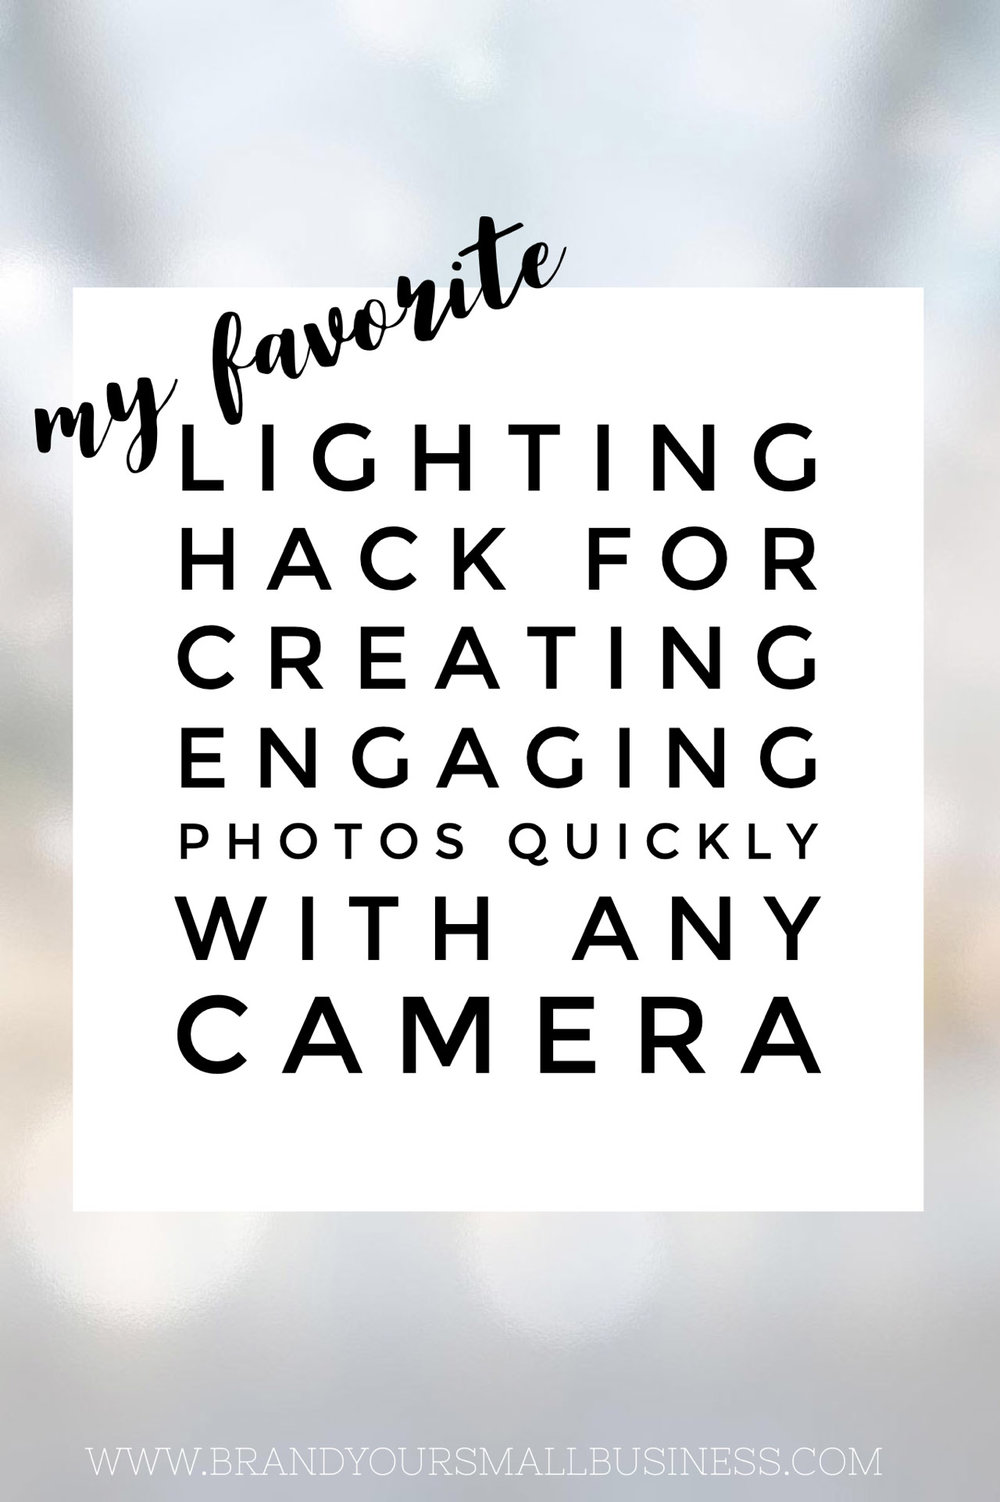 My favorite lighting hack for creating engaging photos quickly with any camera. Great tip for helping entrepreneurs who use Instagram for marketing make their iphone images look more compelling without needing any photography knowledge. www.brandyoursmallbusiness.com